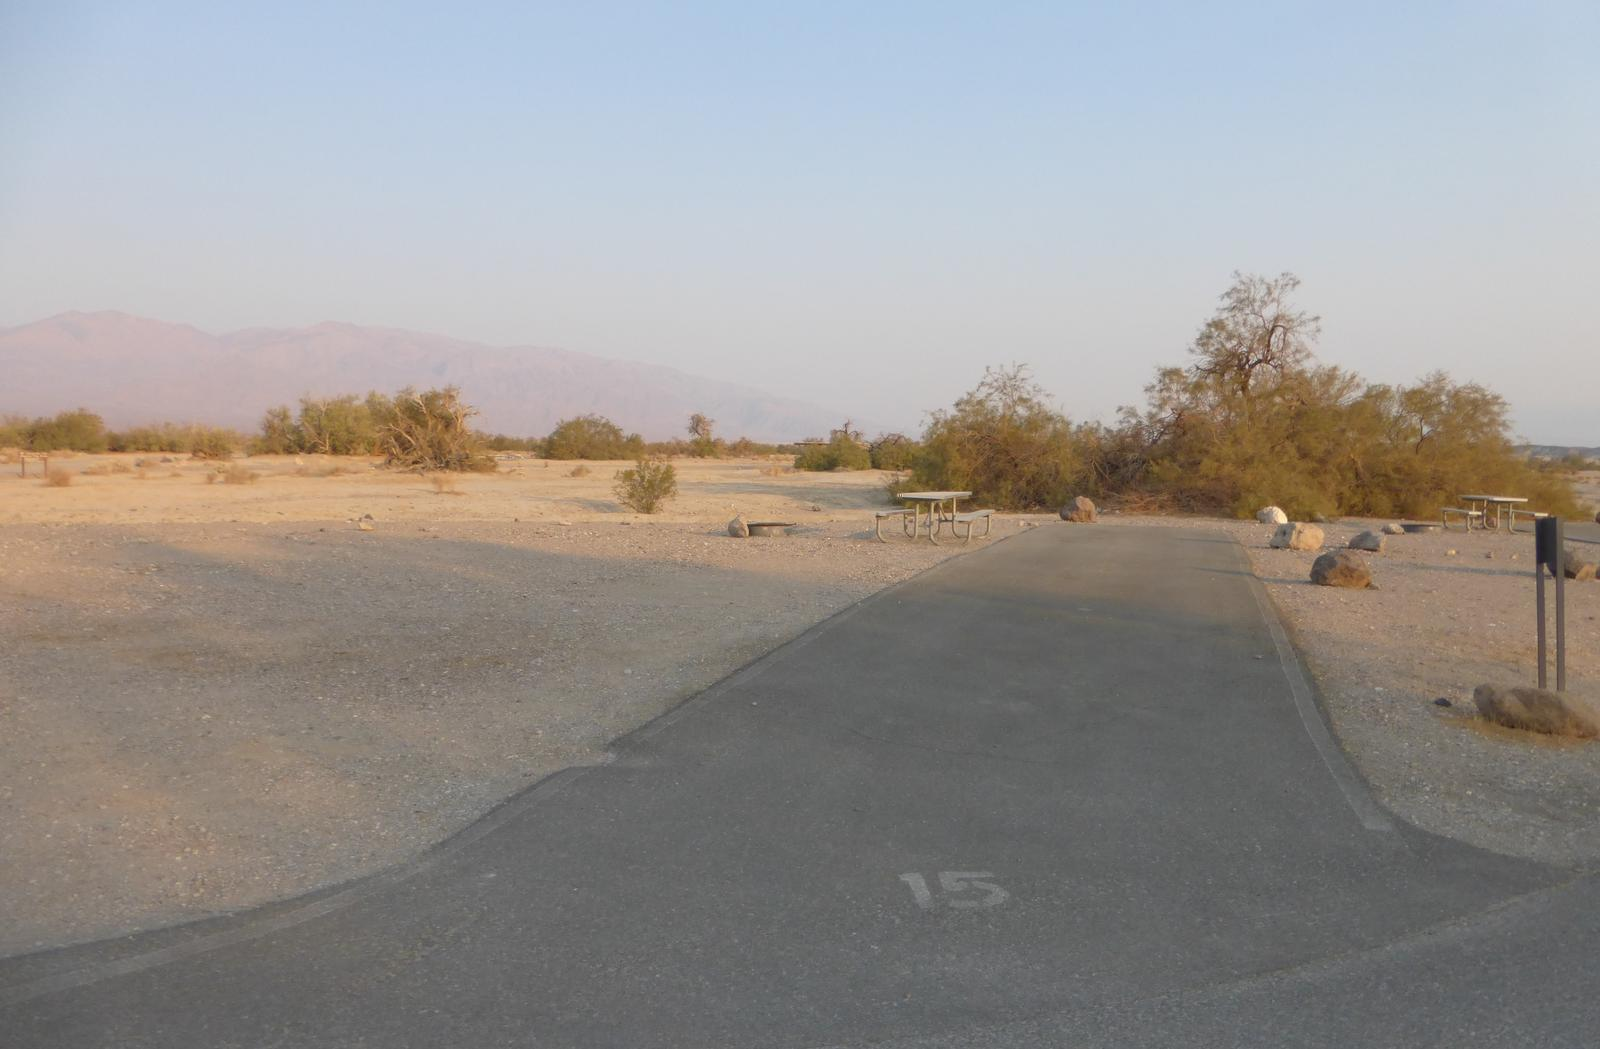 Furnace Creek Campground standard nonelectric site #15 with picnic table and fire ring.